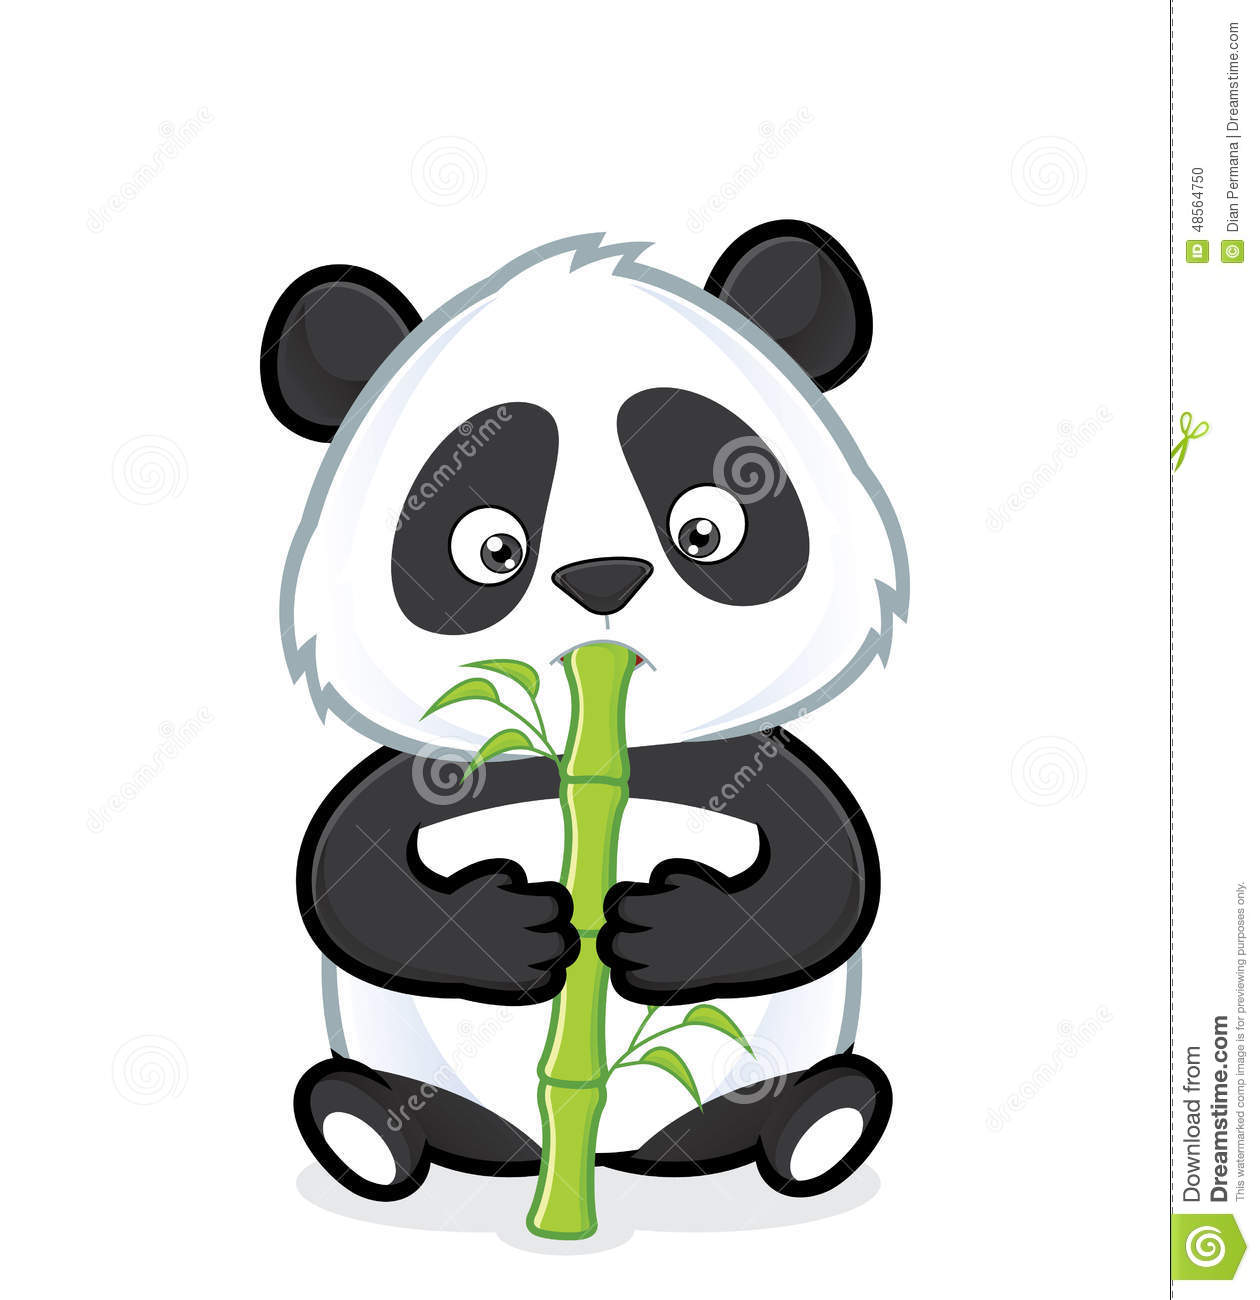 Clipart picture of a panda cartoon character eating bamboo. Zoology Pictures Animals